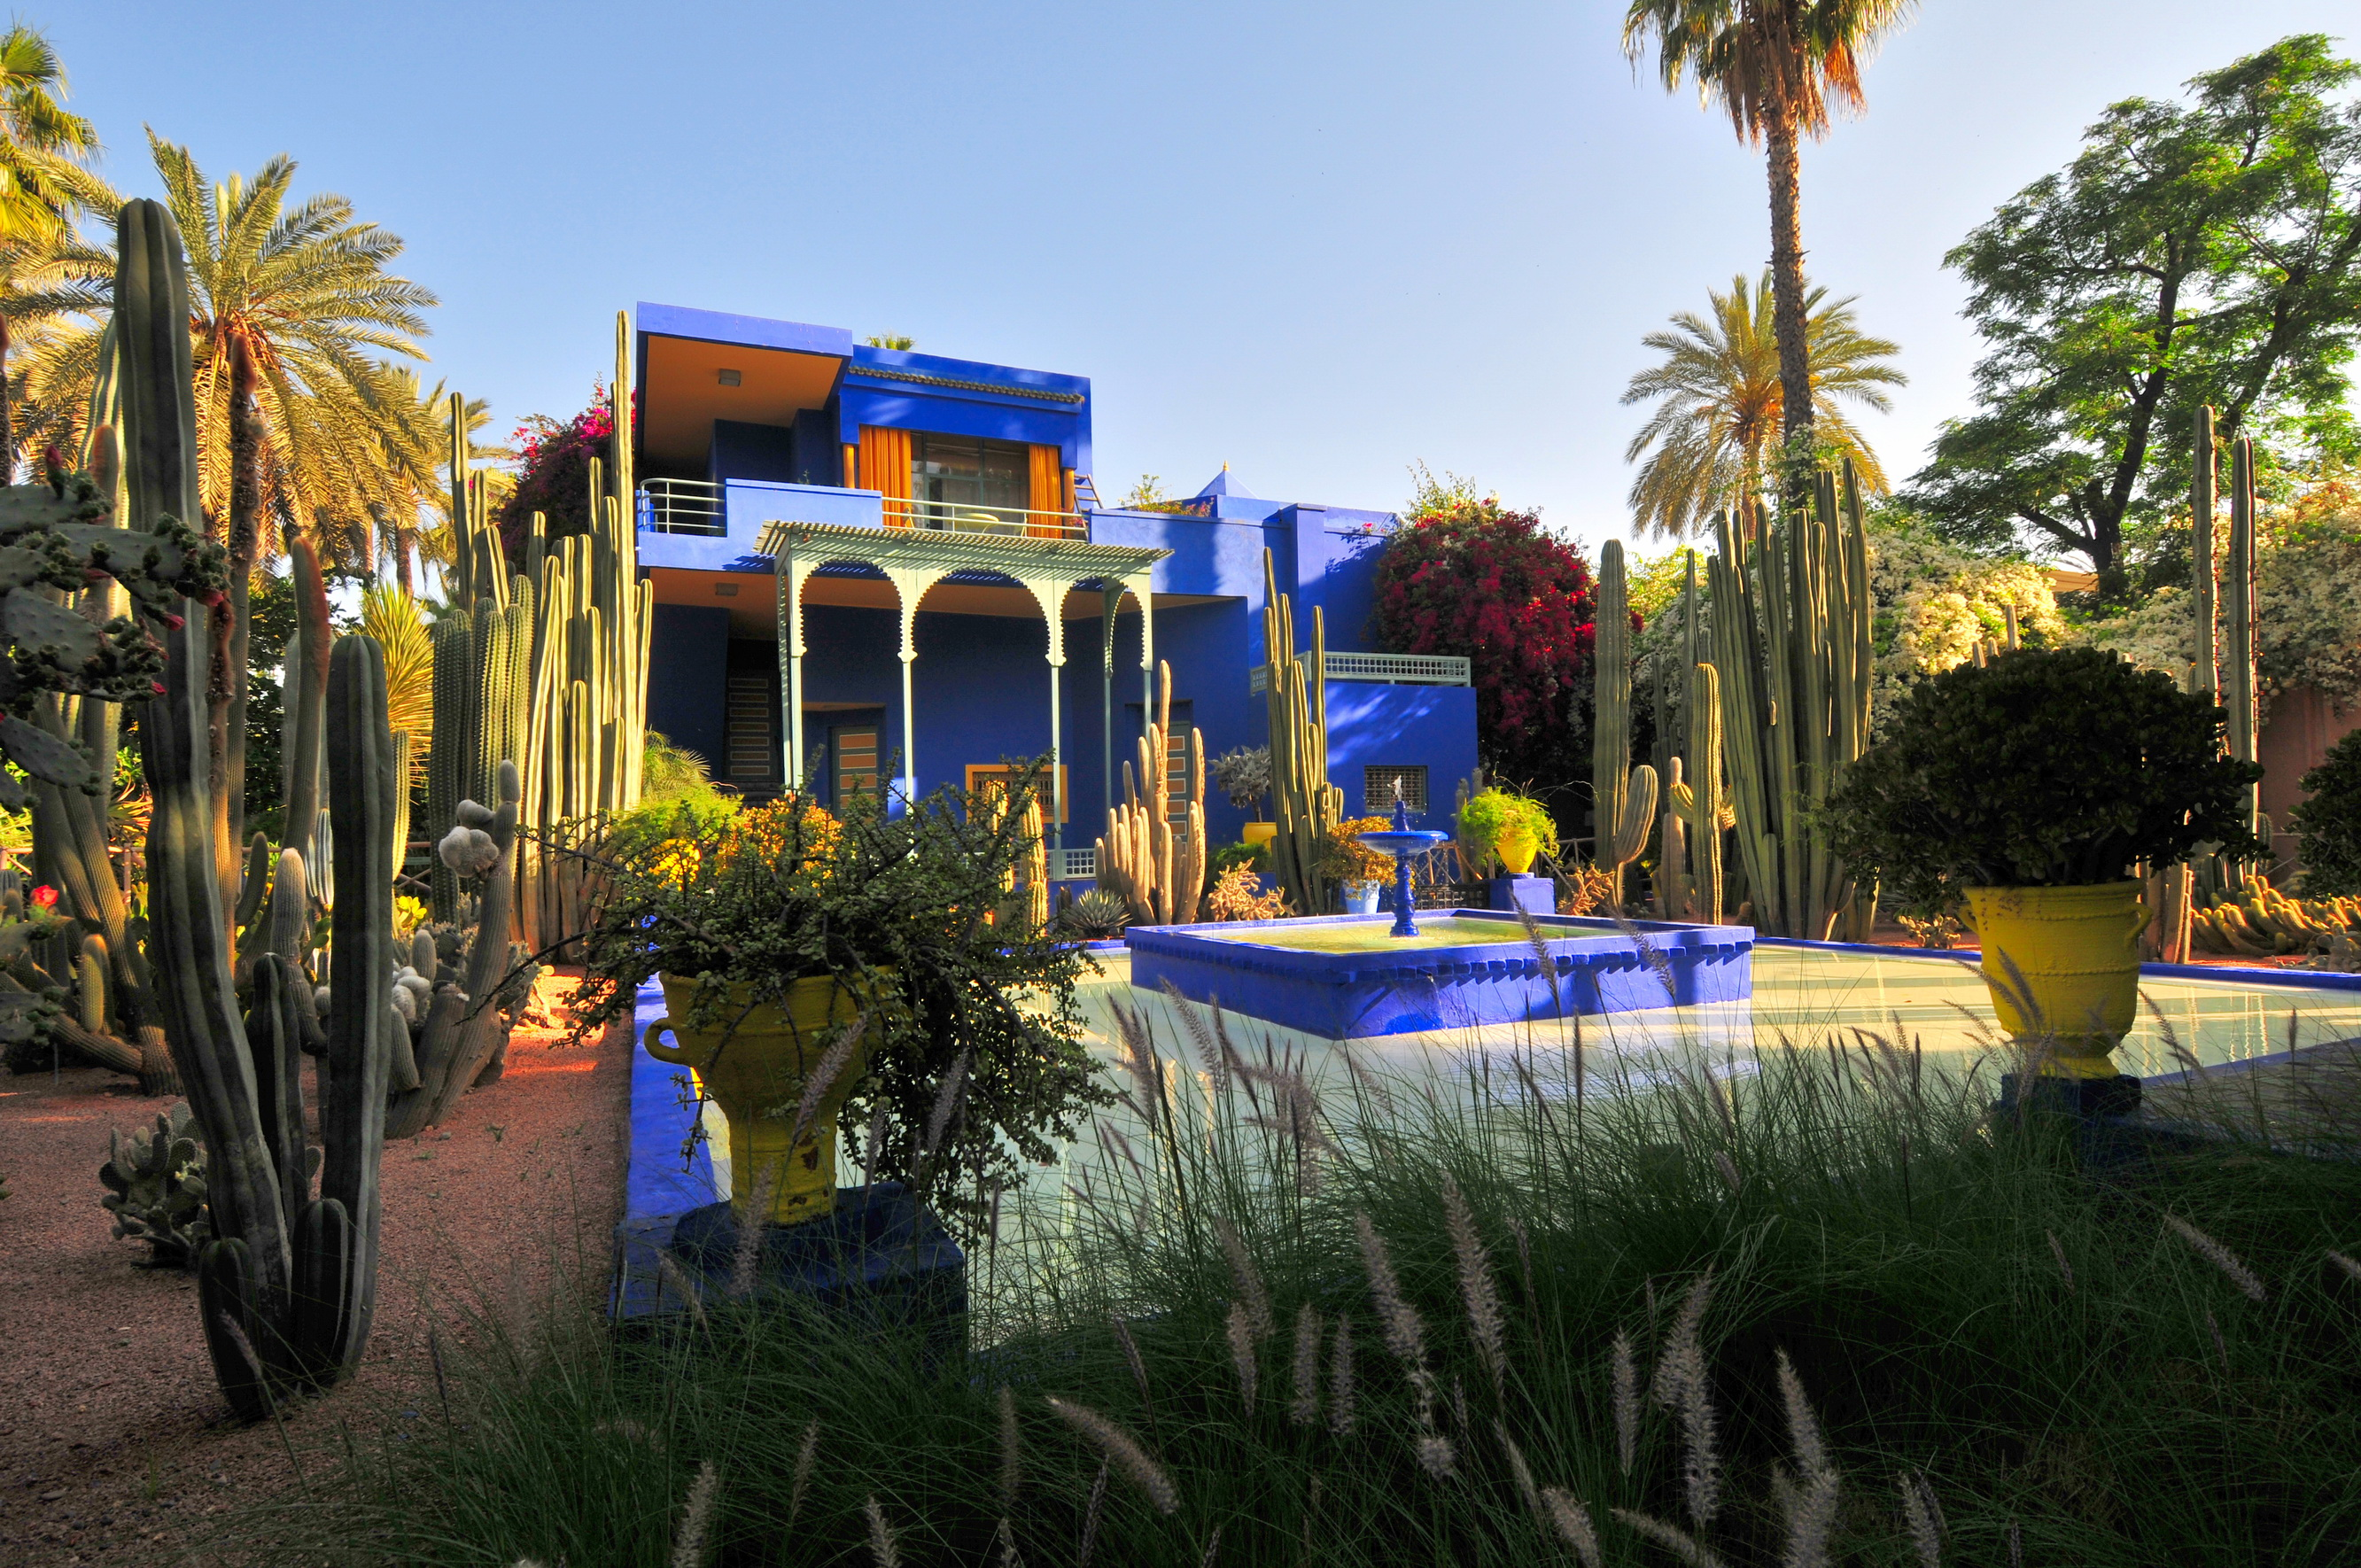 Morocco marrakech jardin majorelle full hd bakgrund and for Le jardin yves saint laurent marrakech